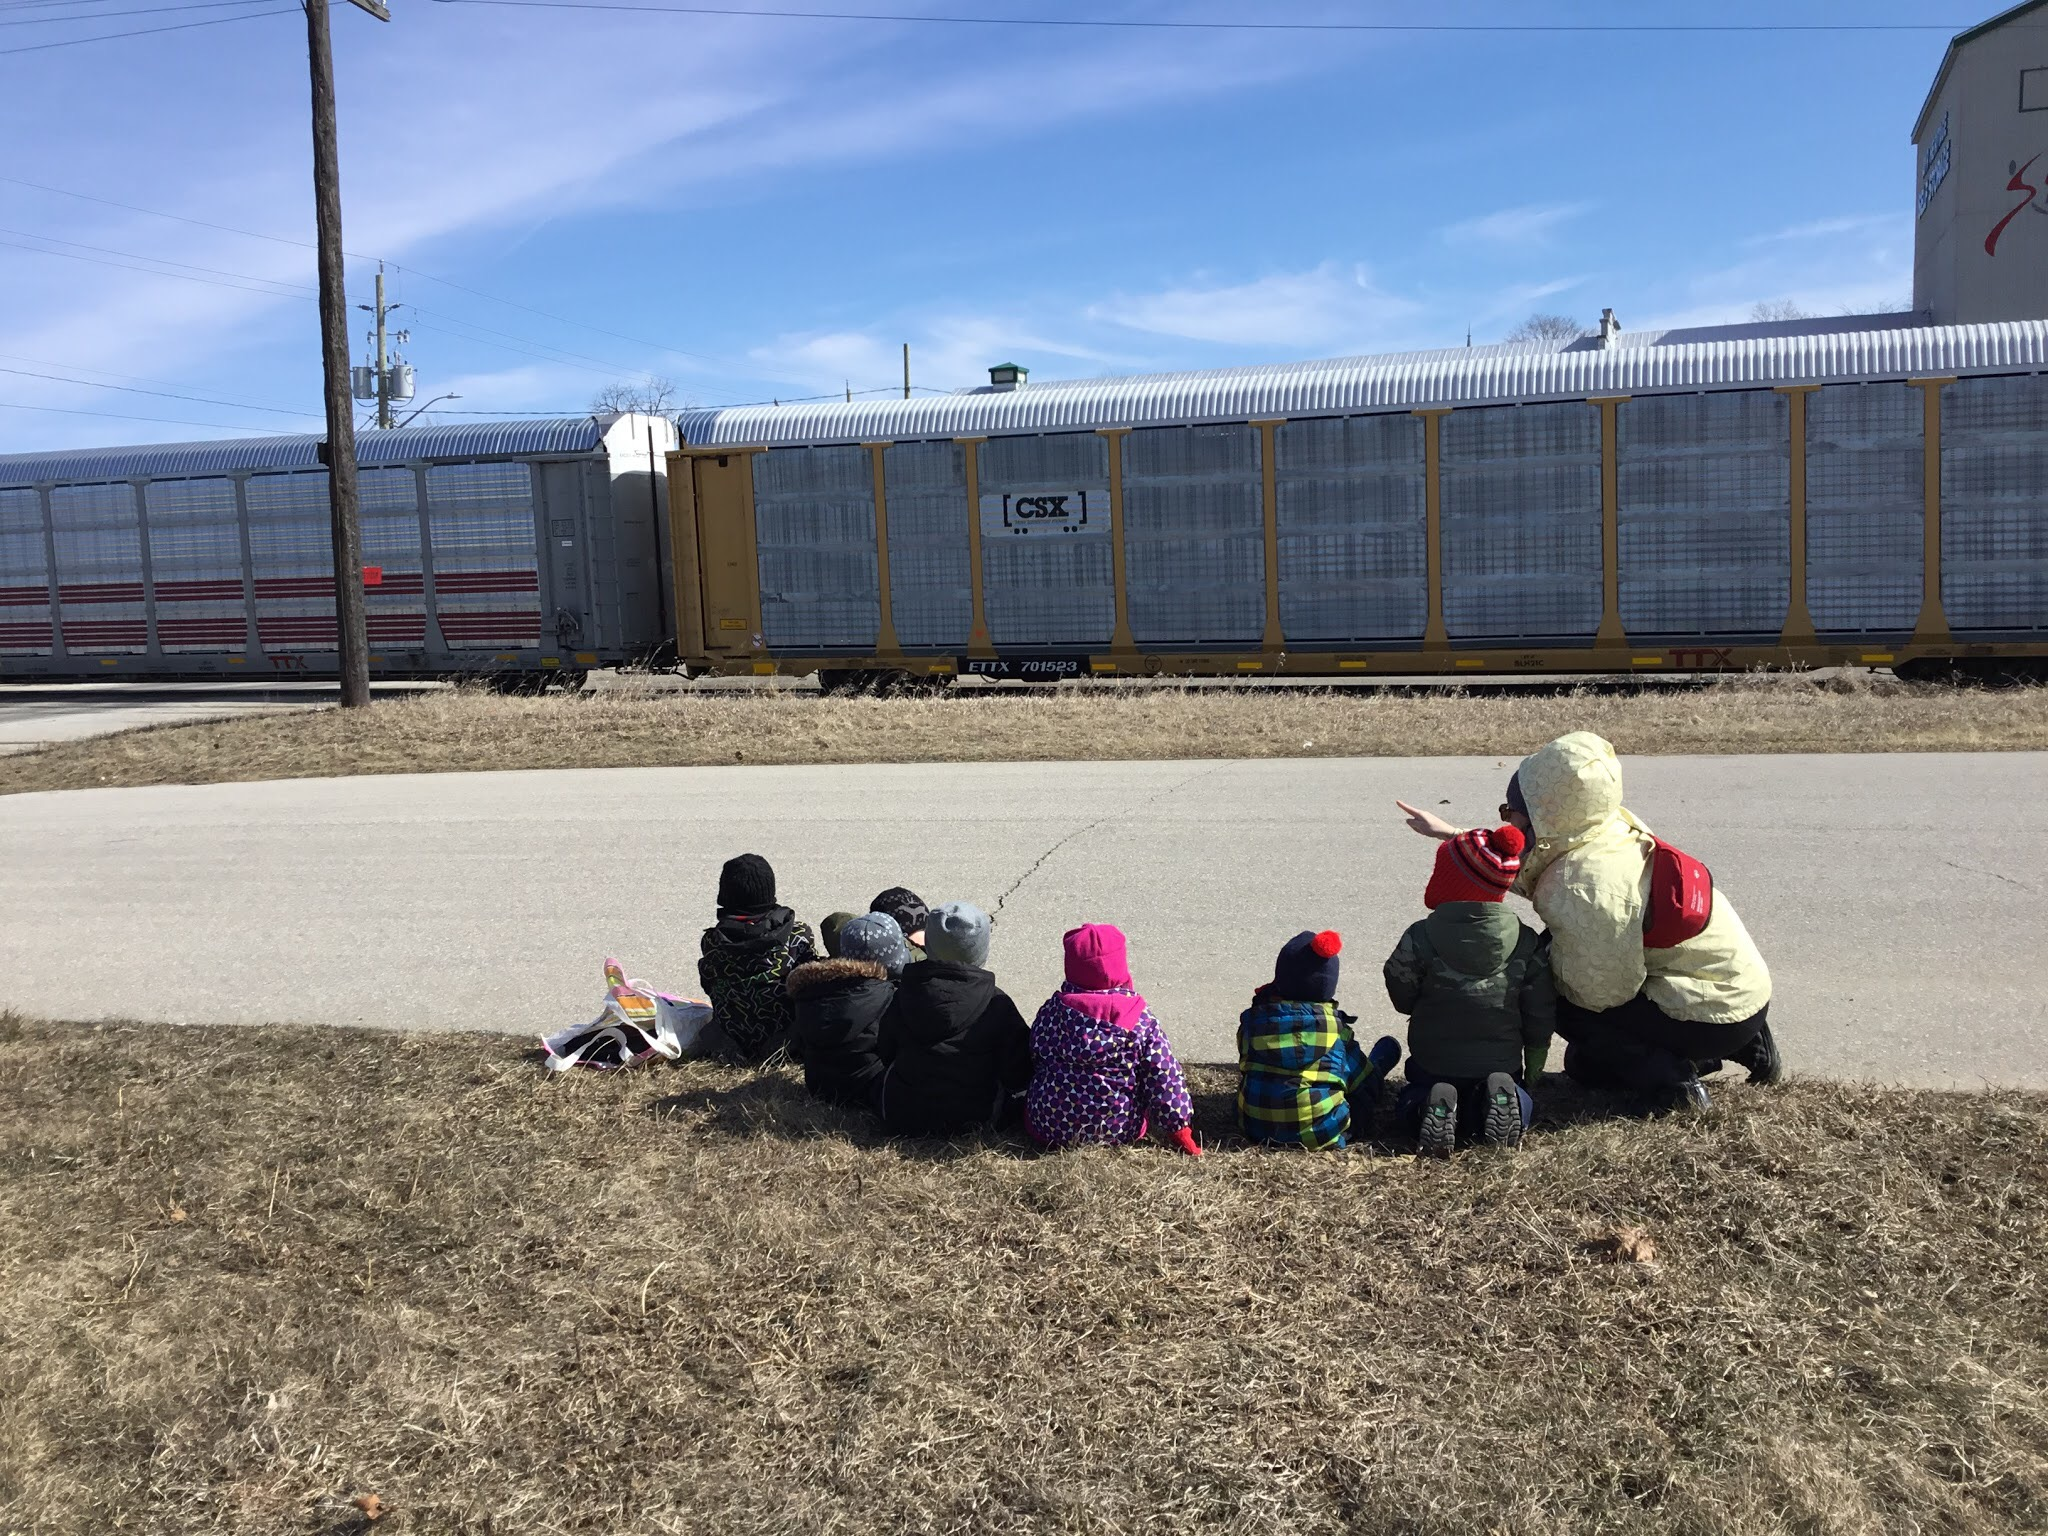 kids watching a train go by